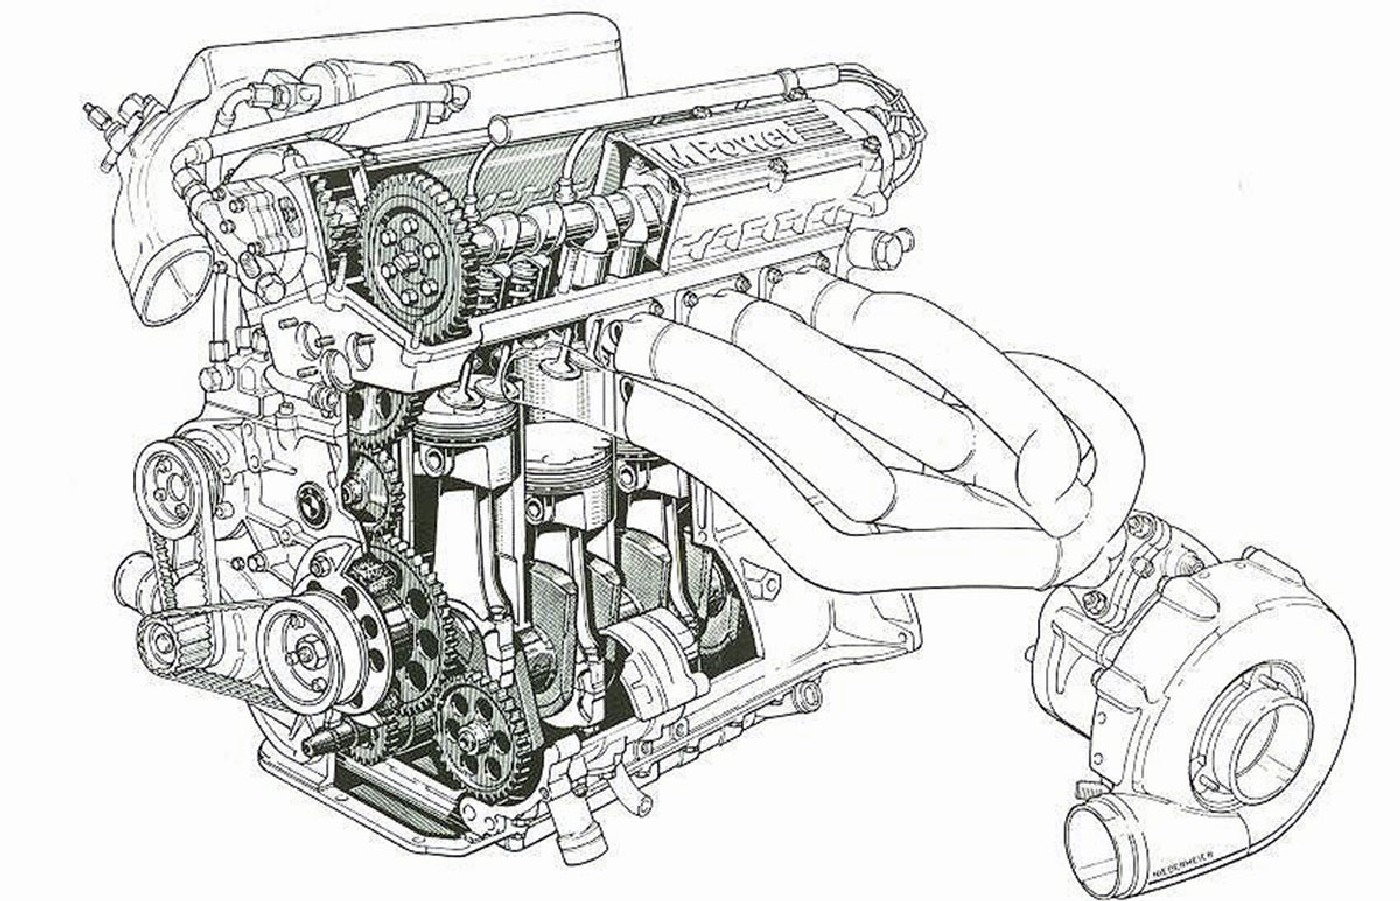 The m10 bmws most successful engine name bmw m12 engine diagramg views 23826 size 3316 kb malvernweather Image collections